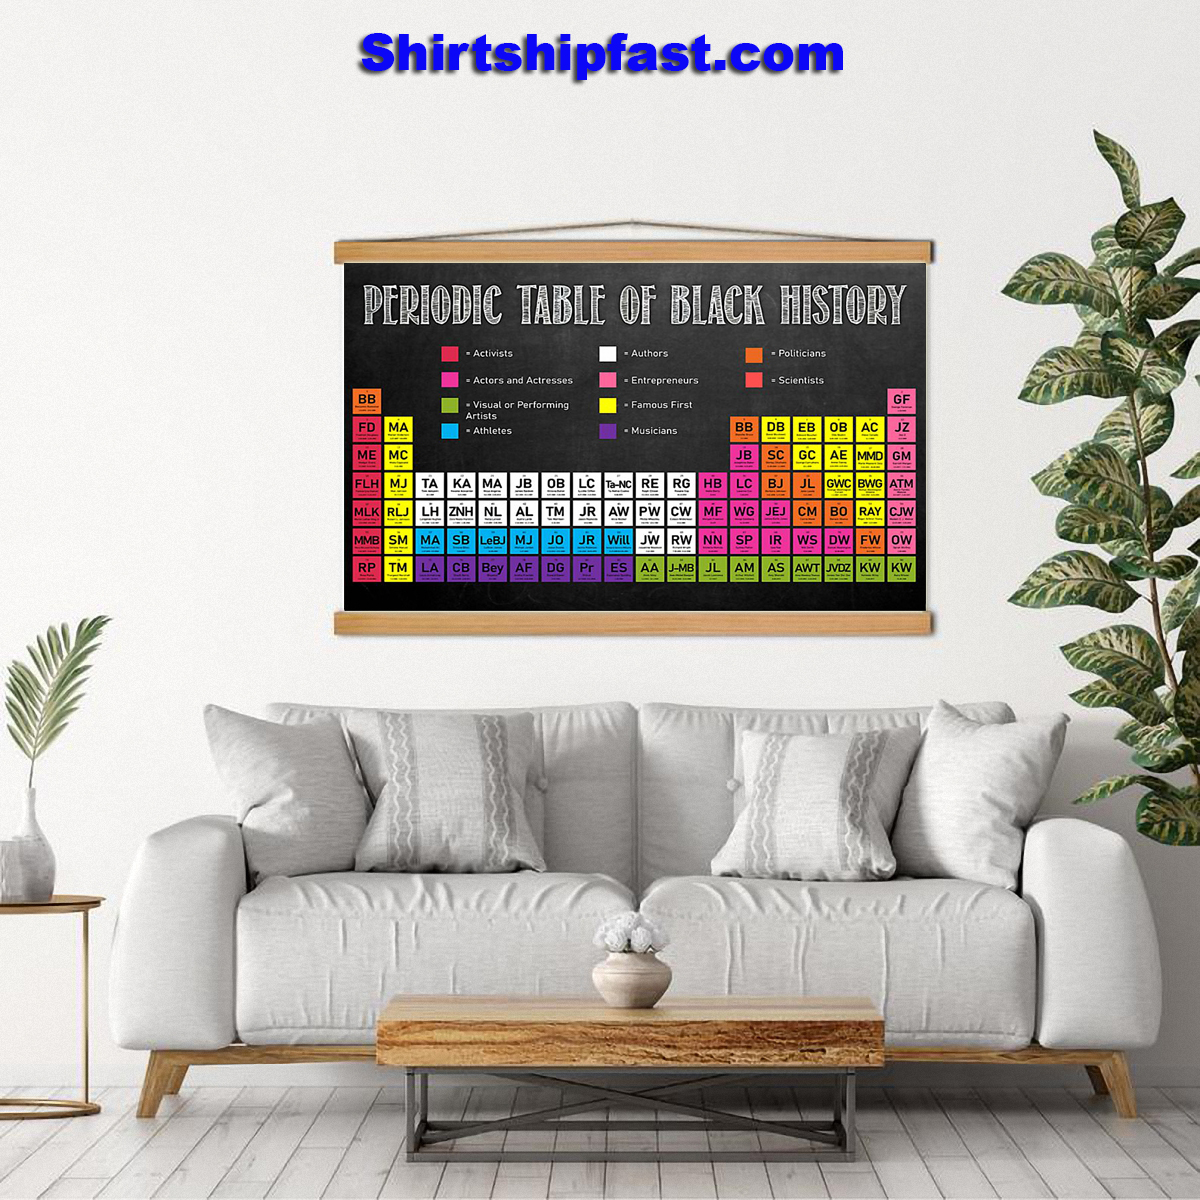 Periodic table of black history poster